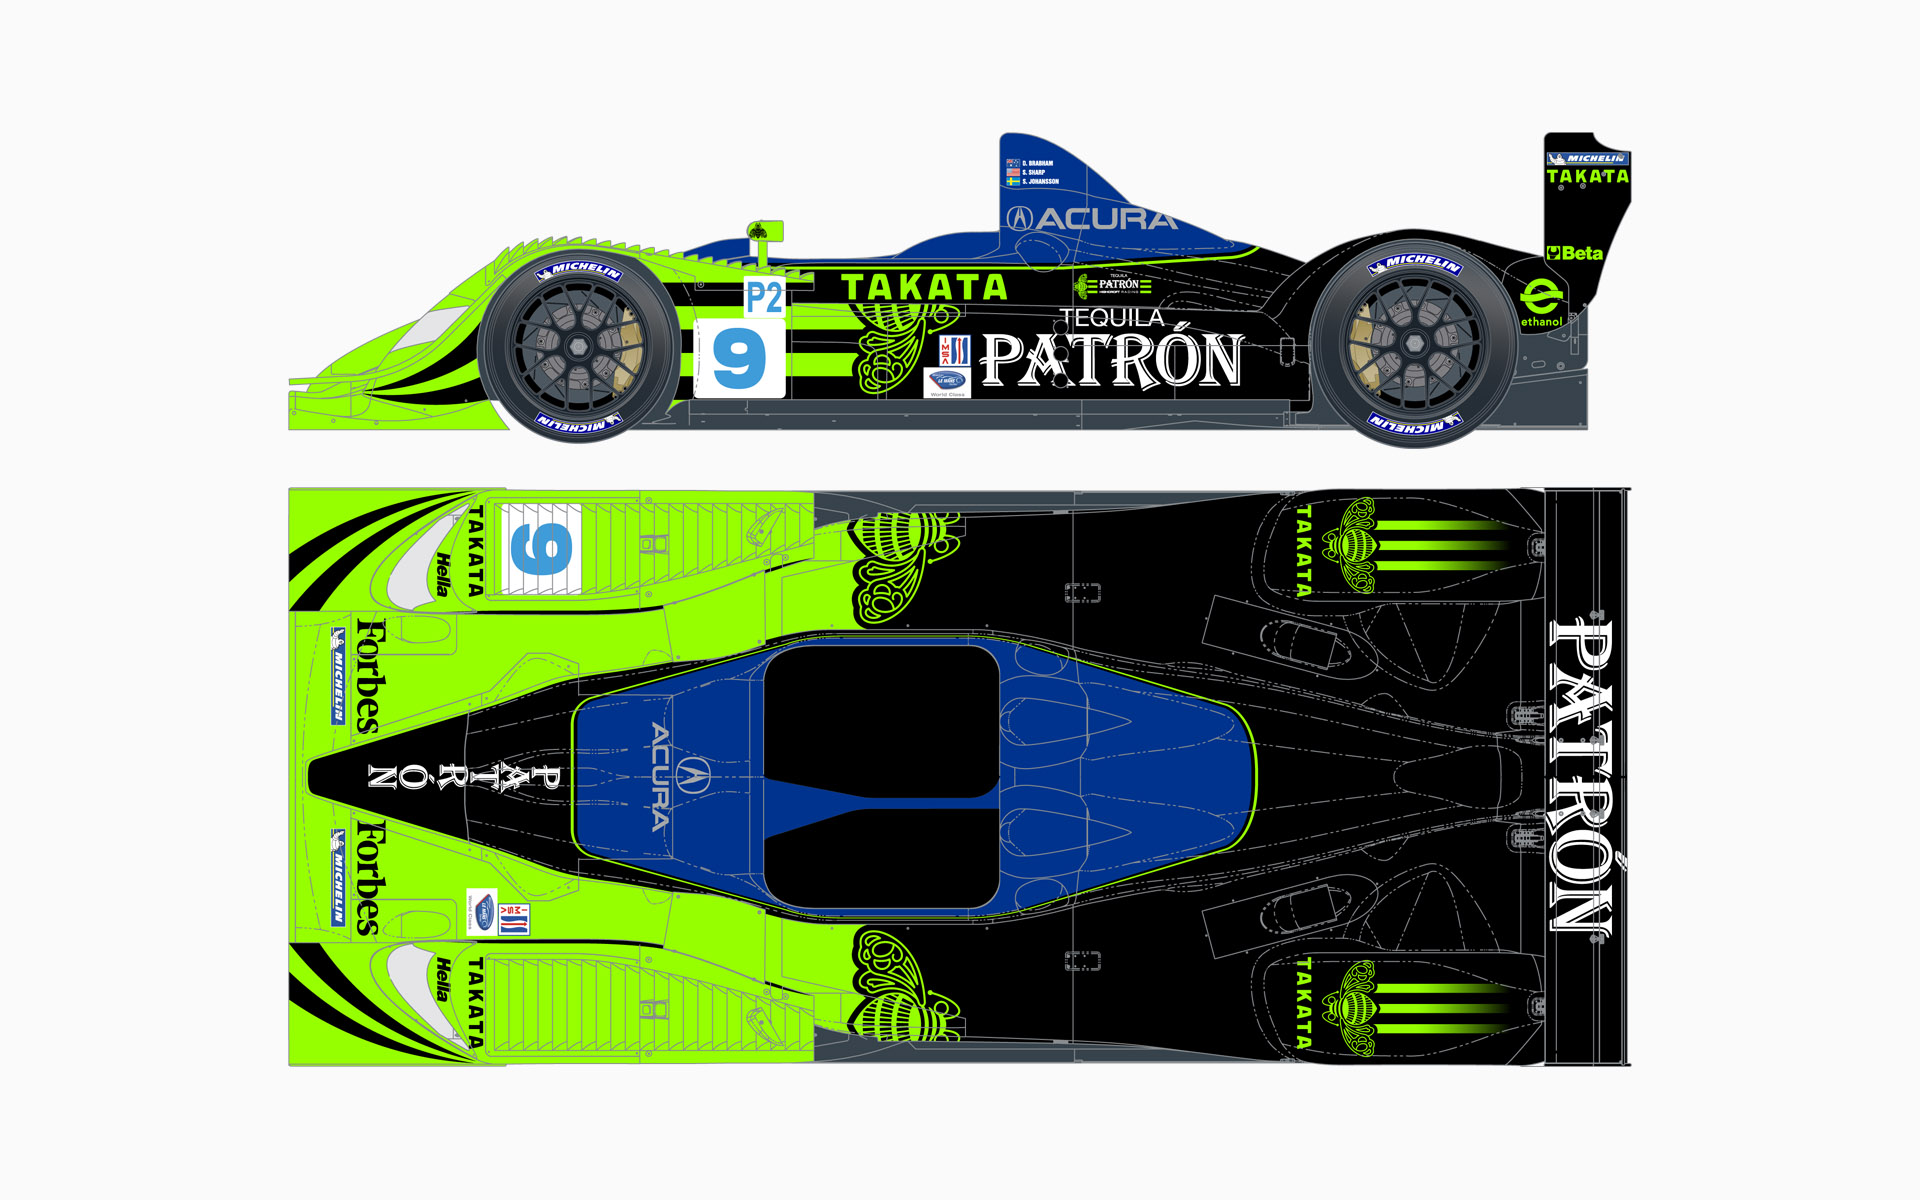 2008 Pátron Highcroft Racing Acura ARX-01b LMP2 Livery Elevations